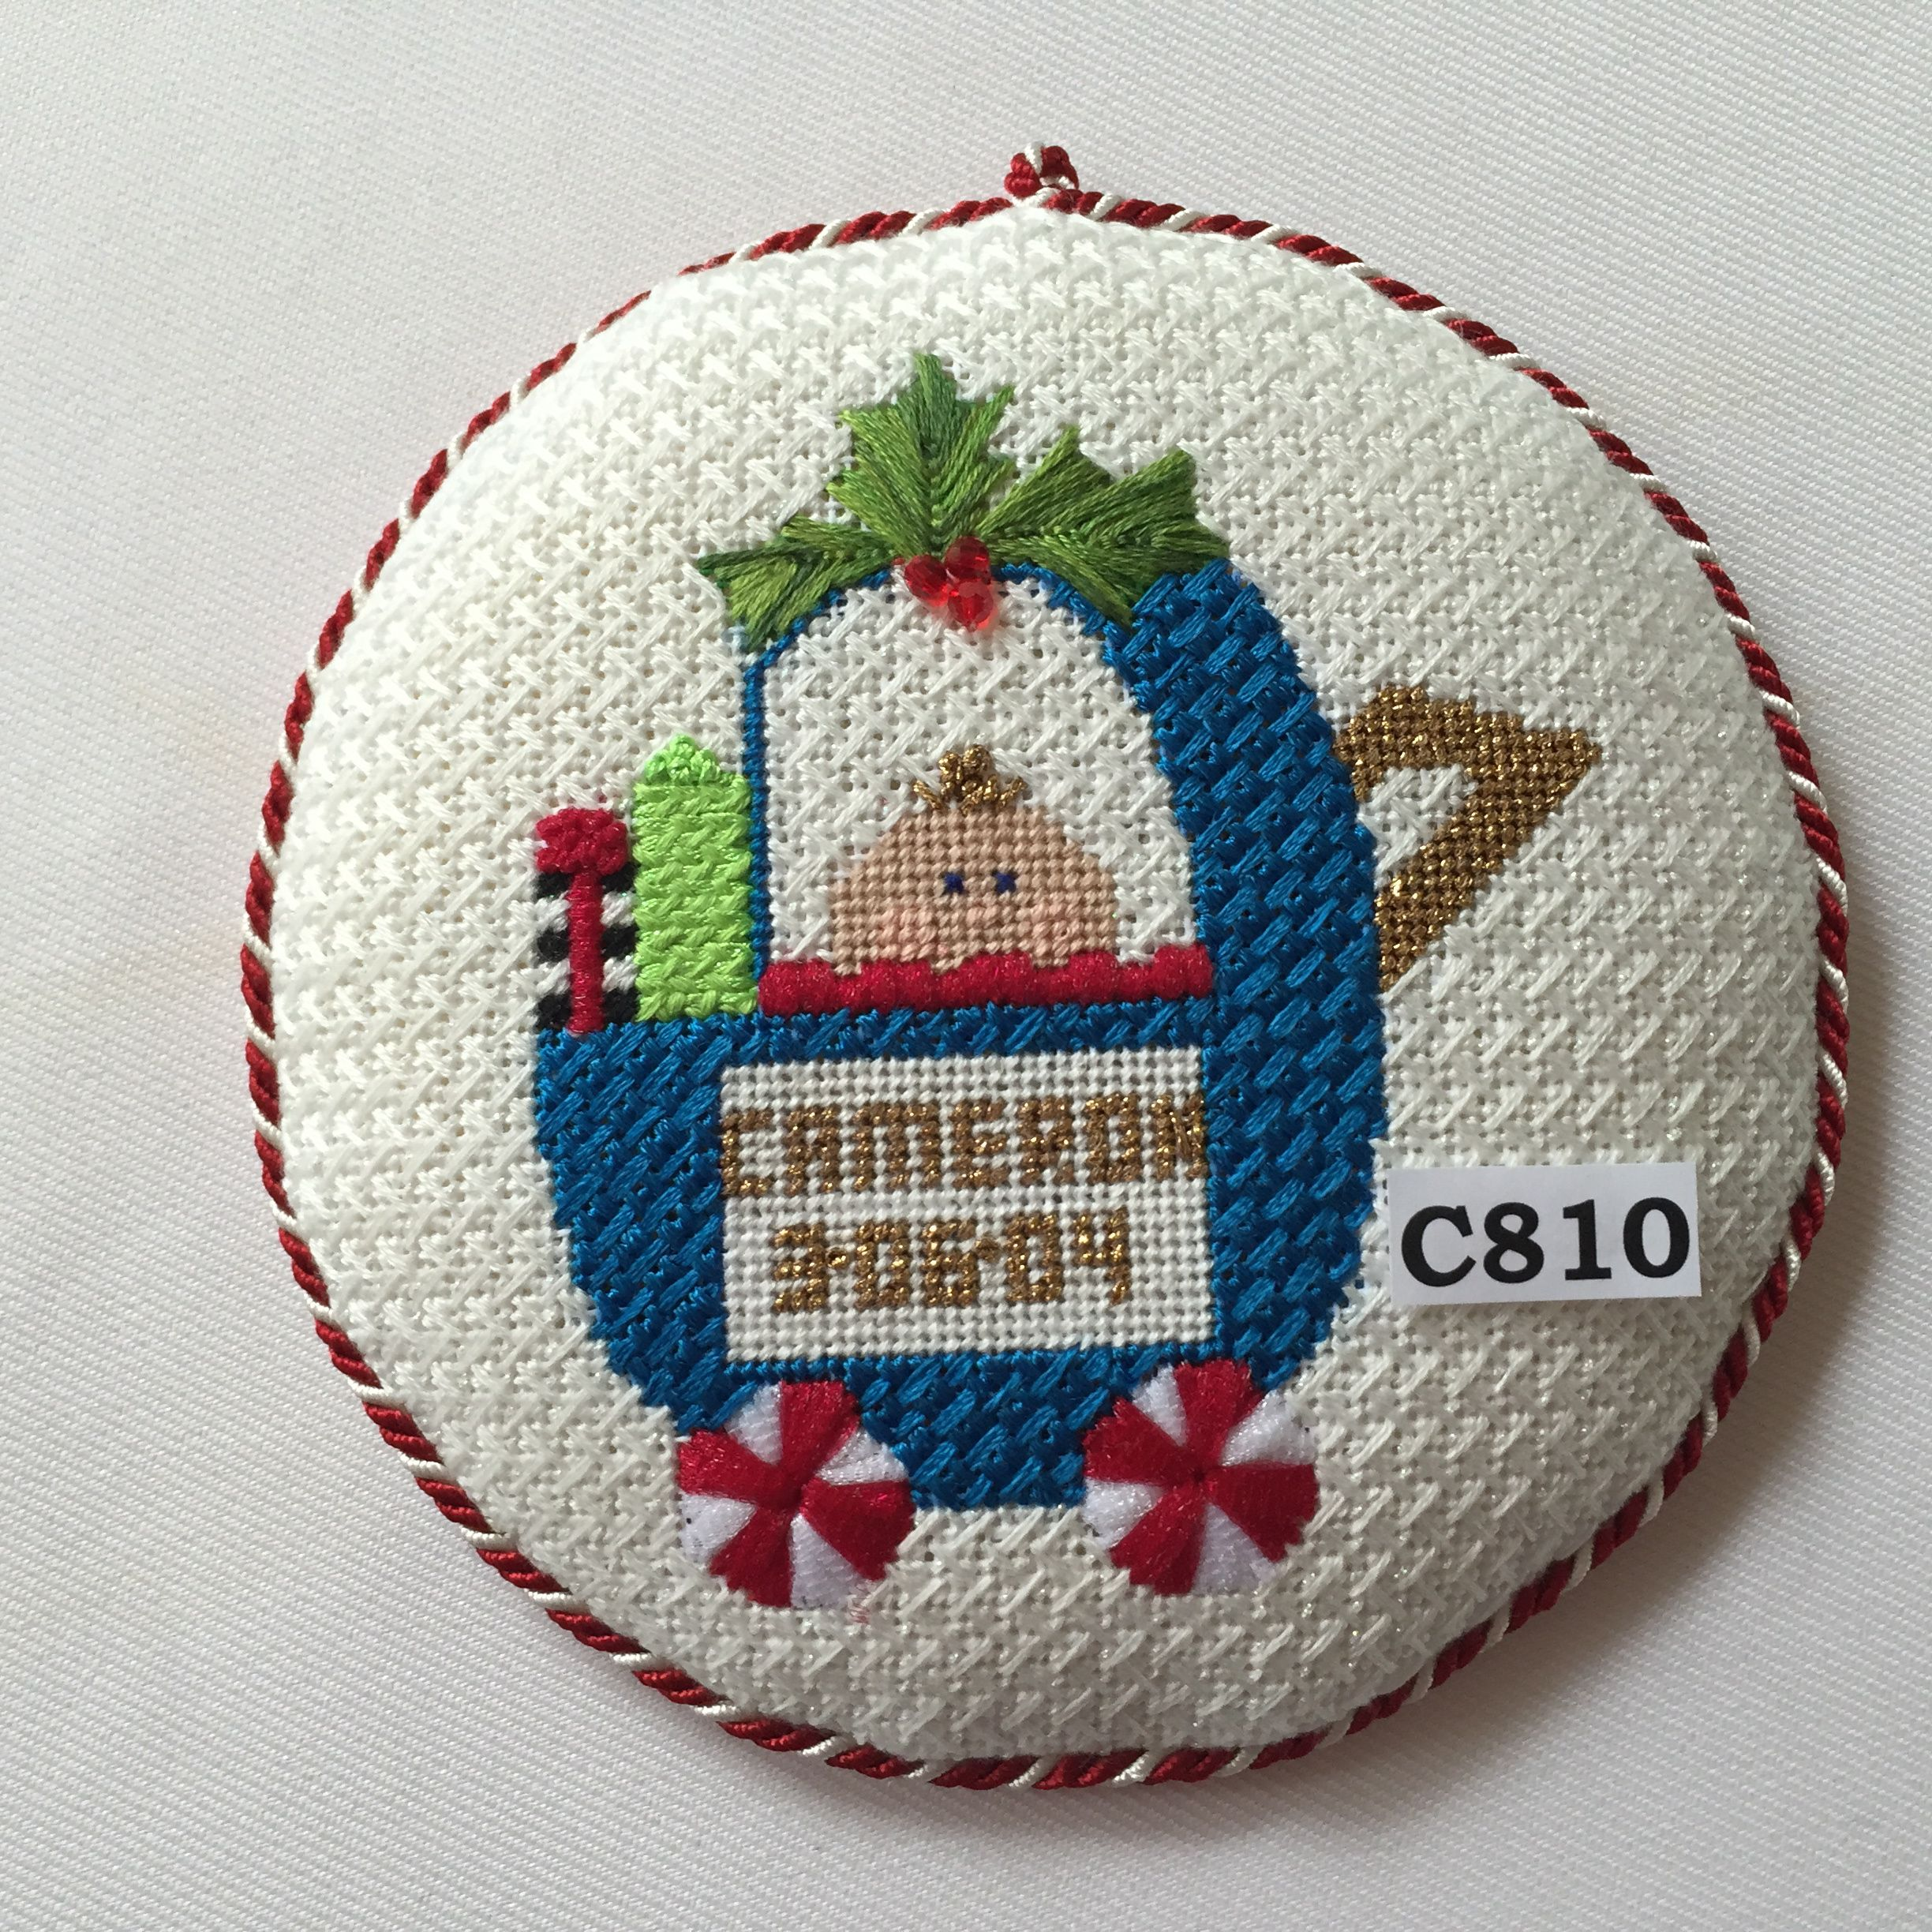 New baby christmas ornament - Princess Me Needlepoint New Baby Ornament